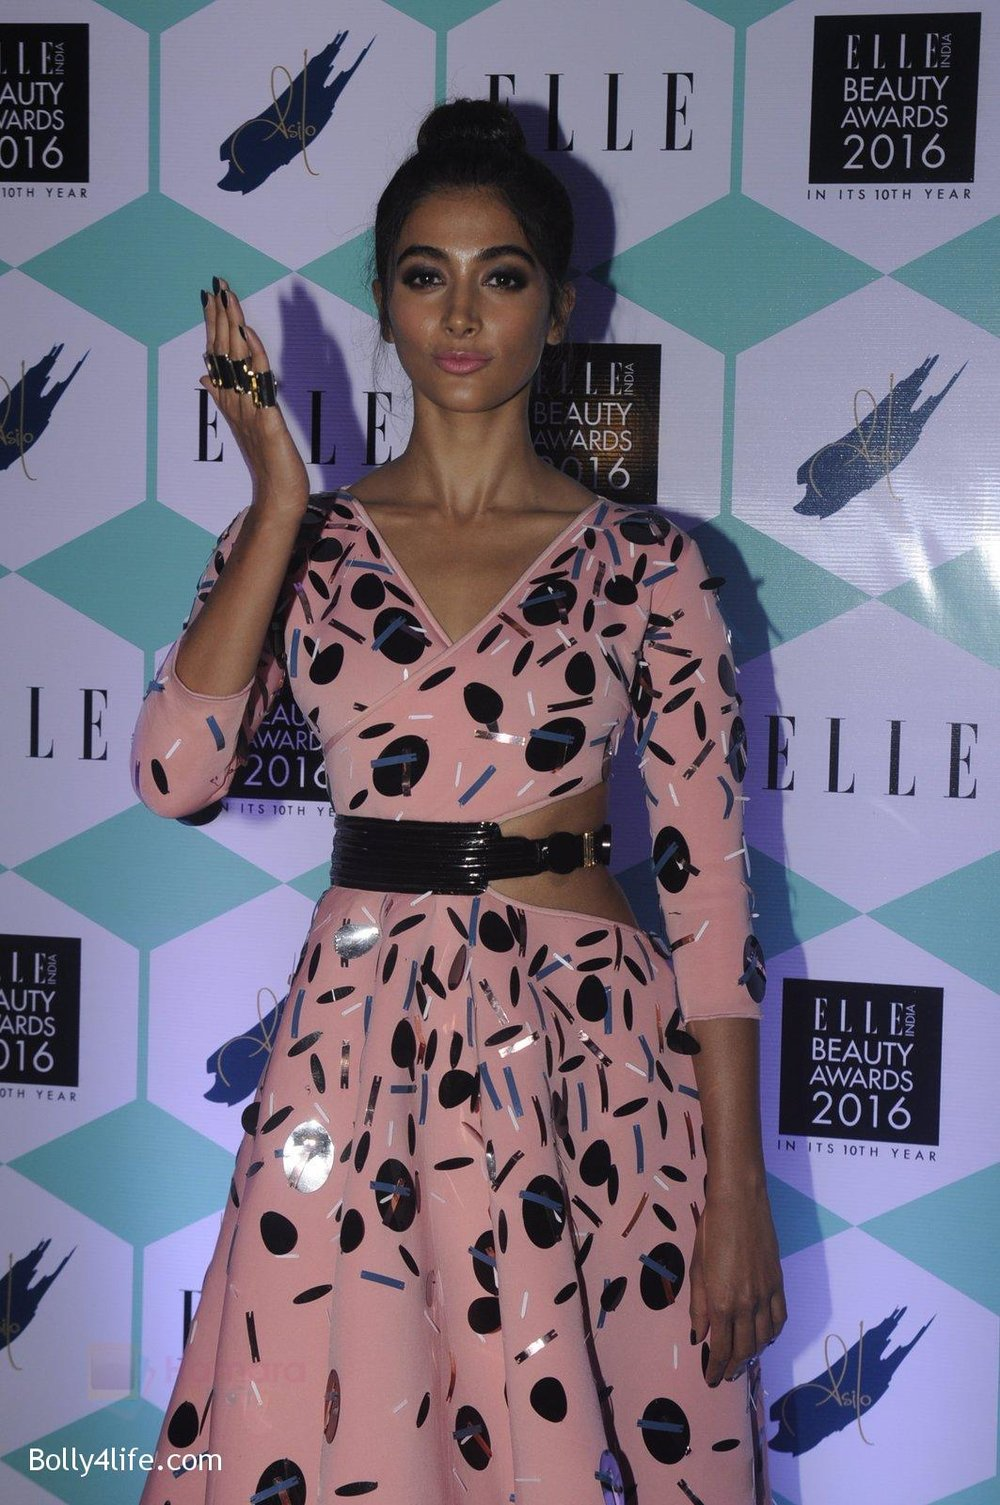 Pooja-Hegde-at-Elle-Beauty-Awards-on-5th-Oct-2016-64.jpg